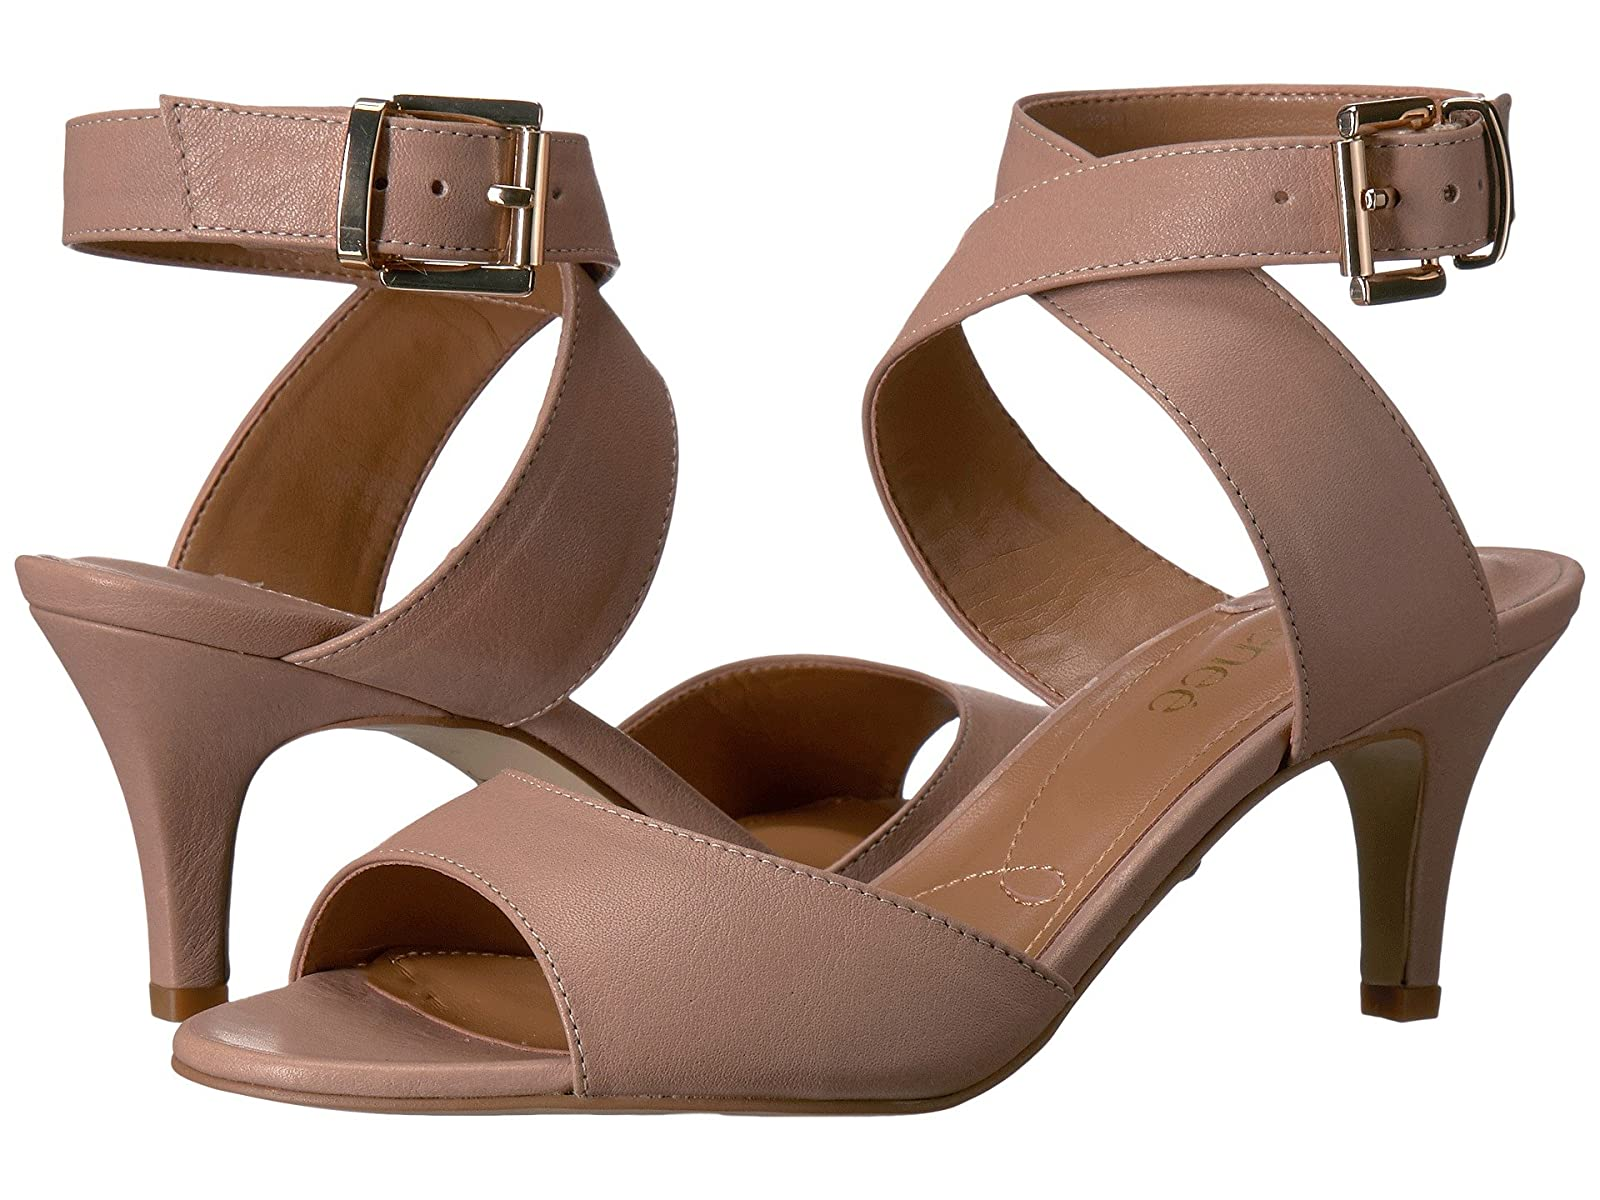 J. Renee SoncinoAtmospheric grades have affordable shoes